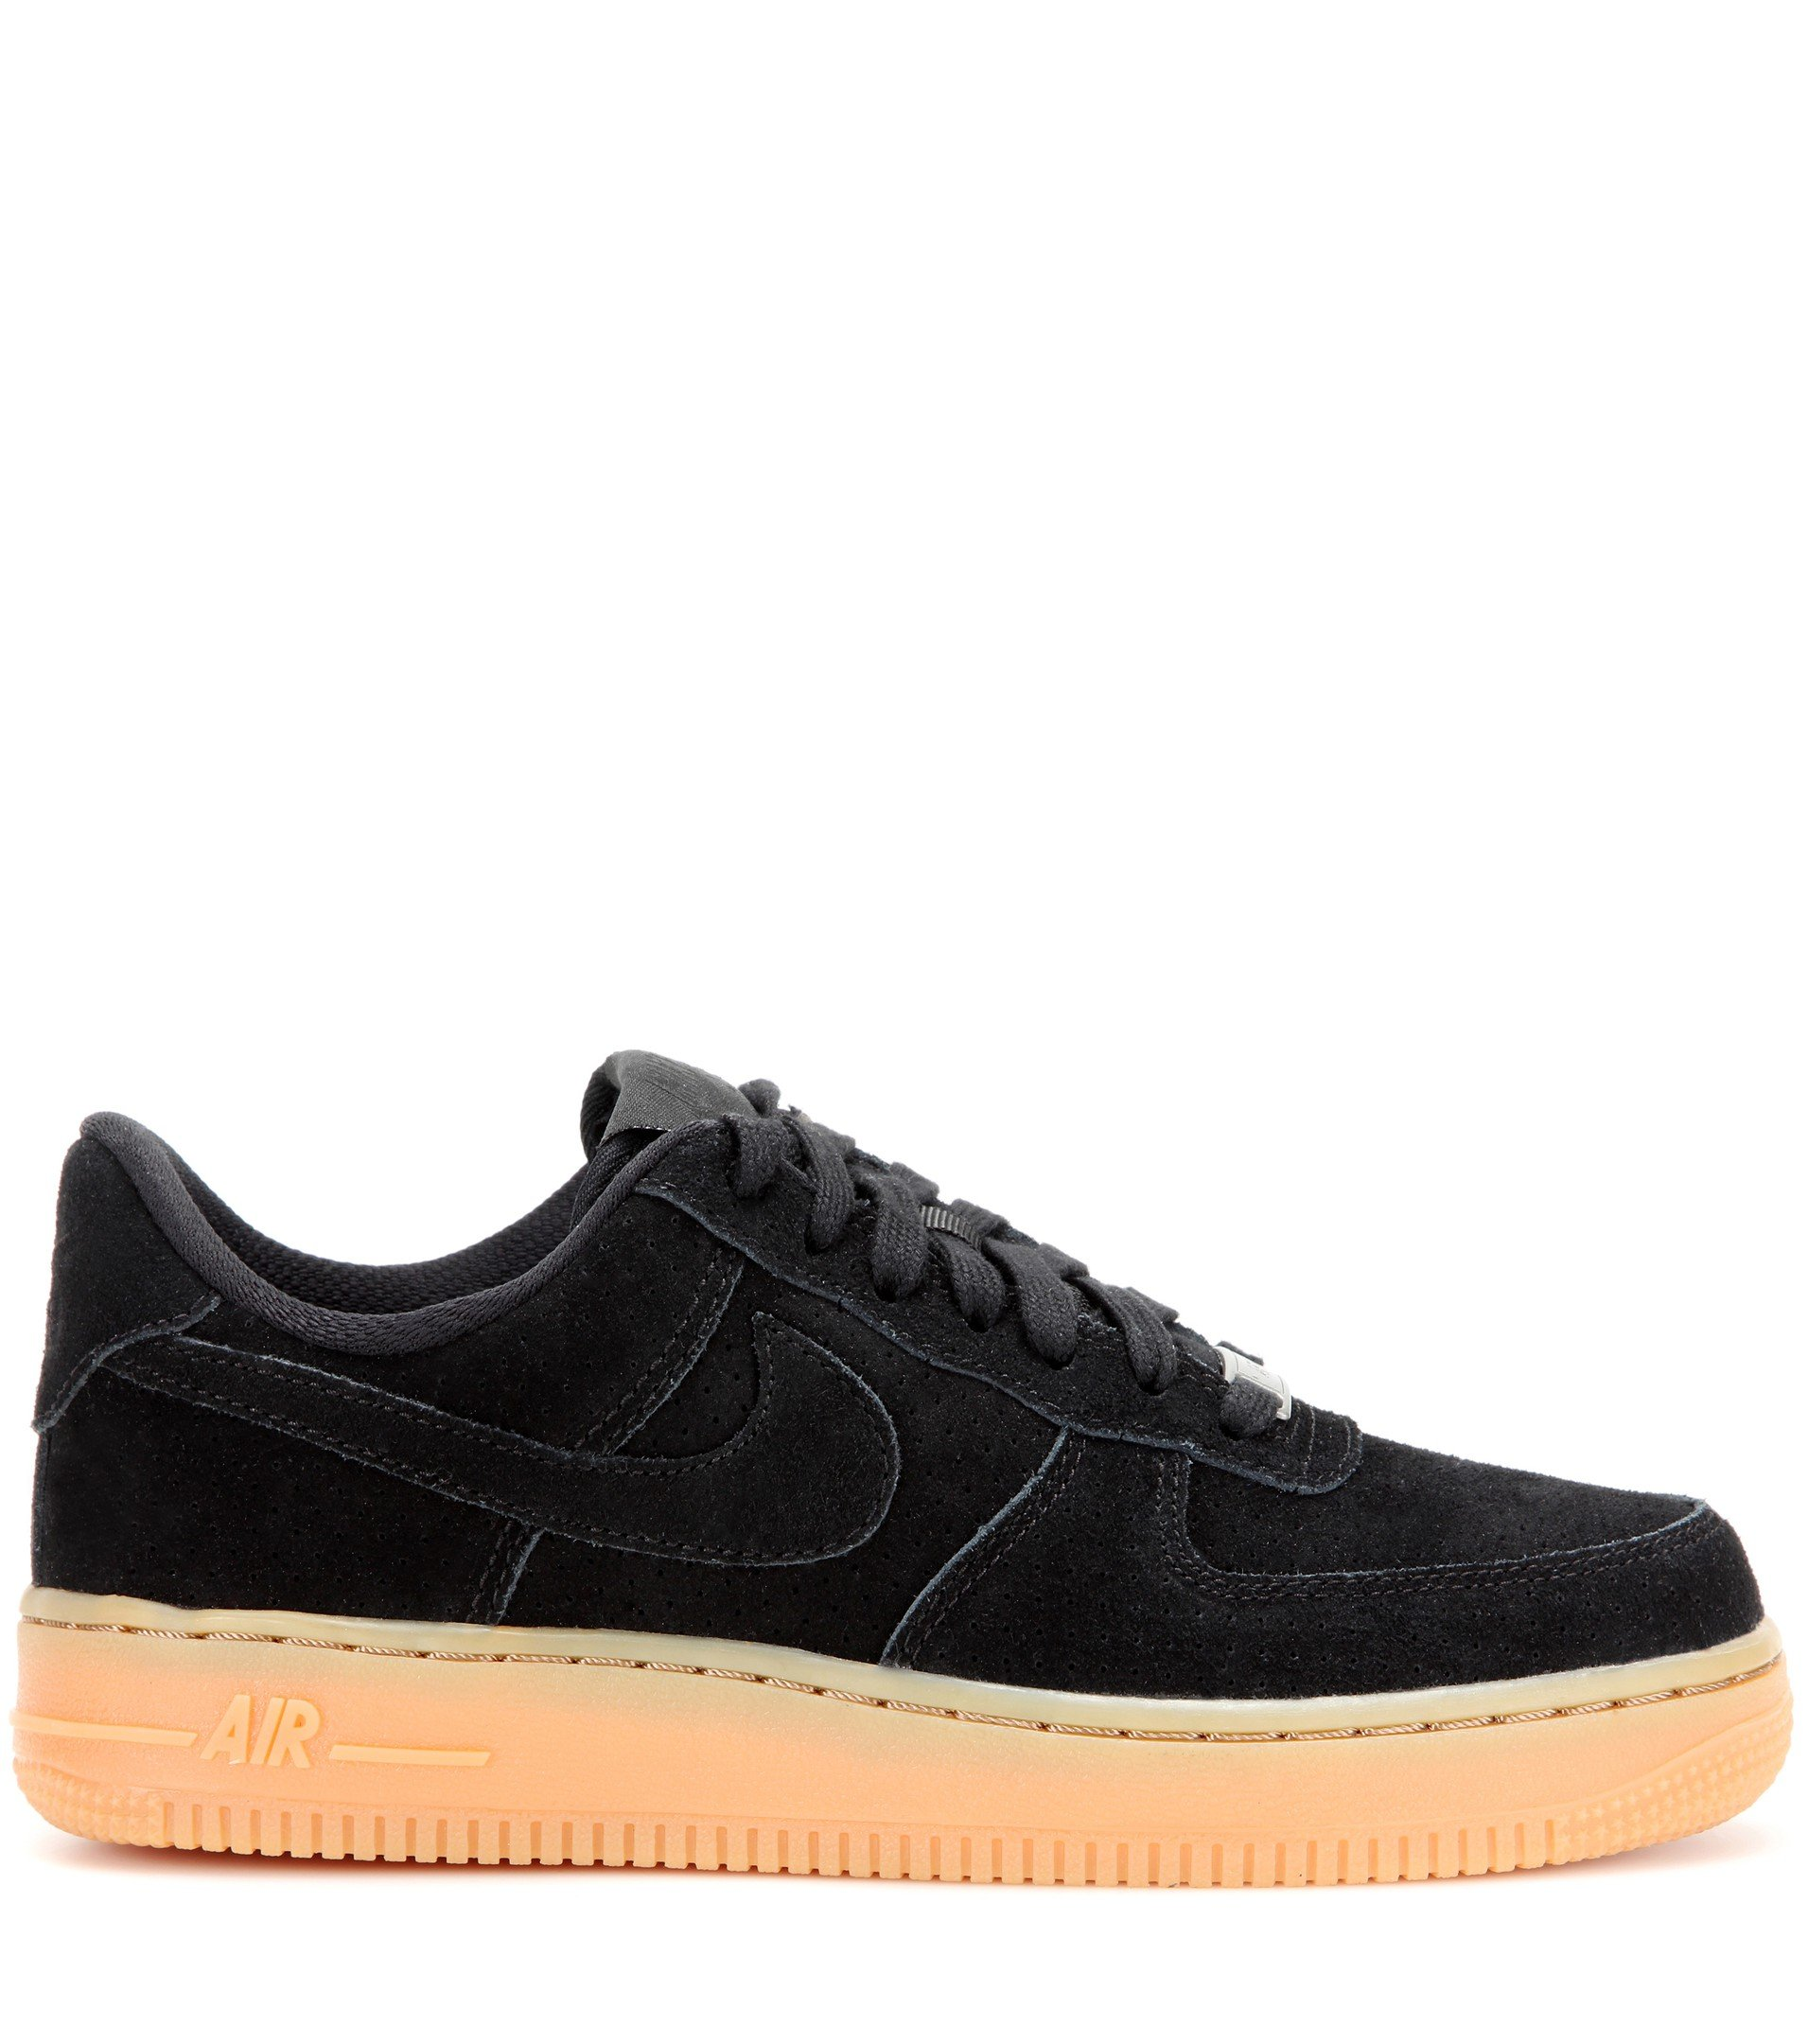 lyst nike air force 1 suede sneakers in black. Black Bedroom Furniture Sets. Home Design Ideas